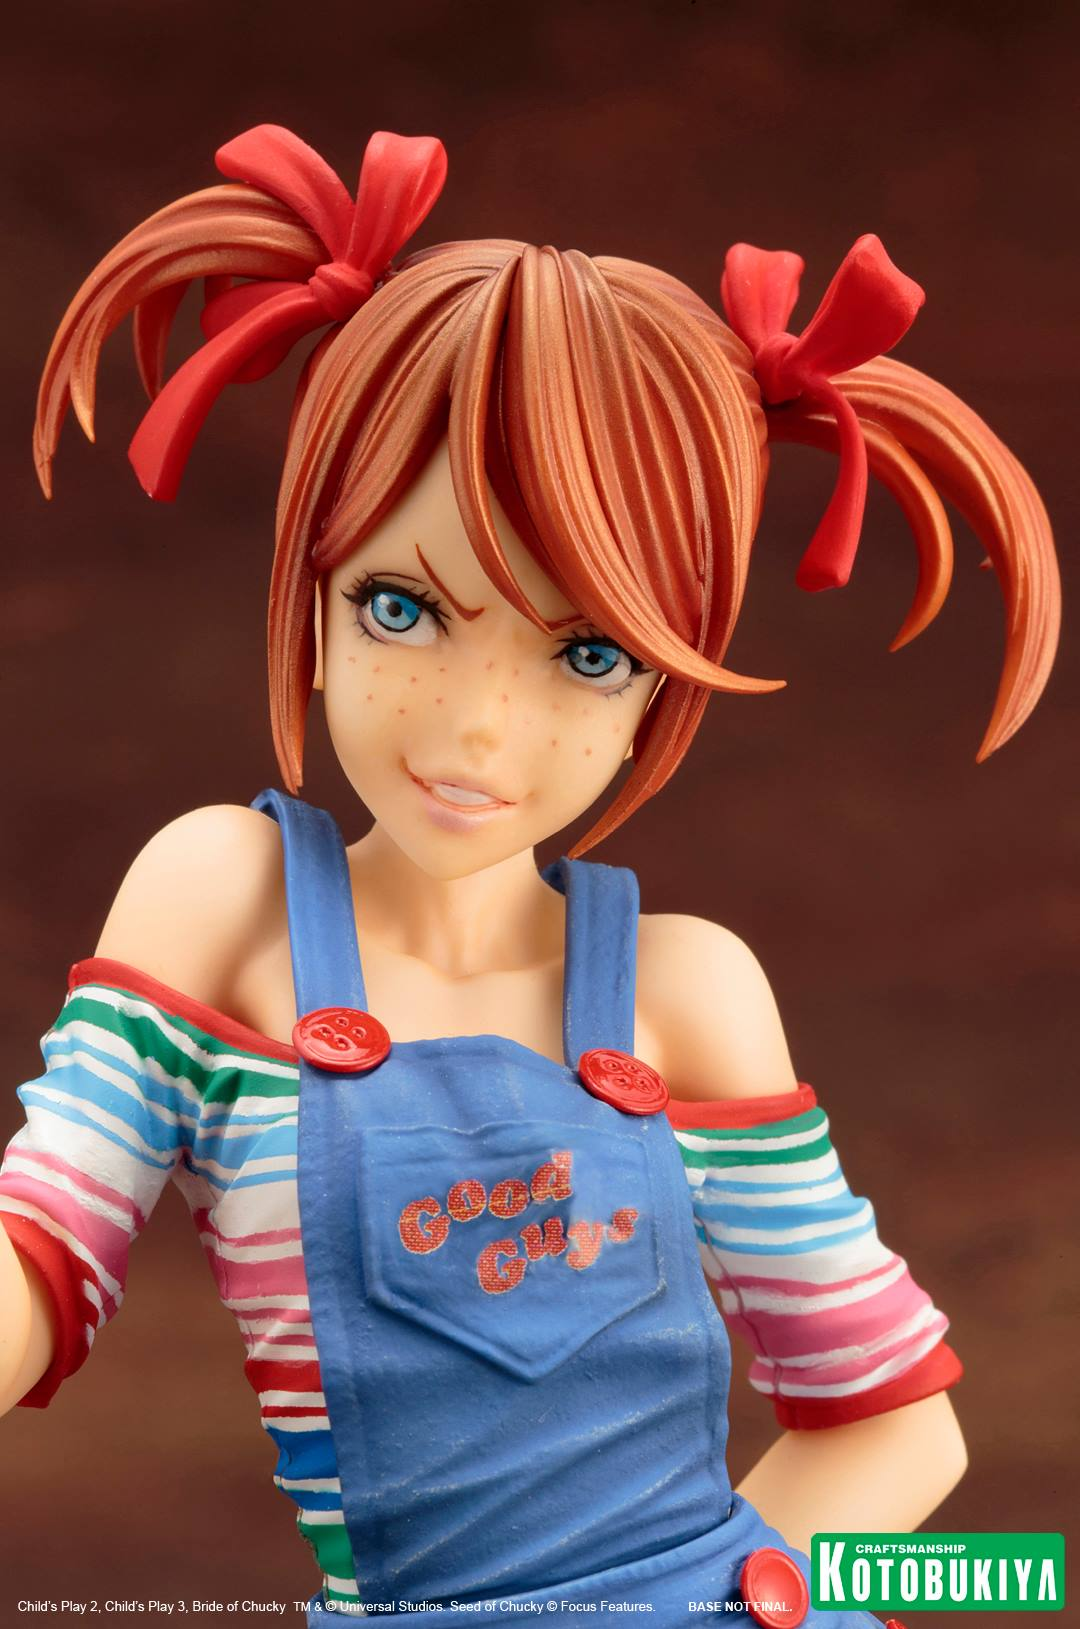 childs-play-chucky-exclusive-deluxe-version-bishoujo-statue-kotobukiya-4a